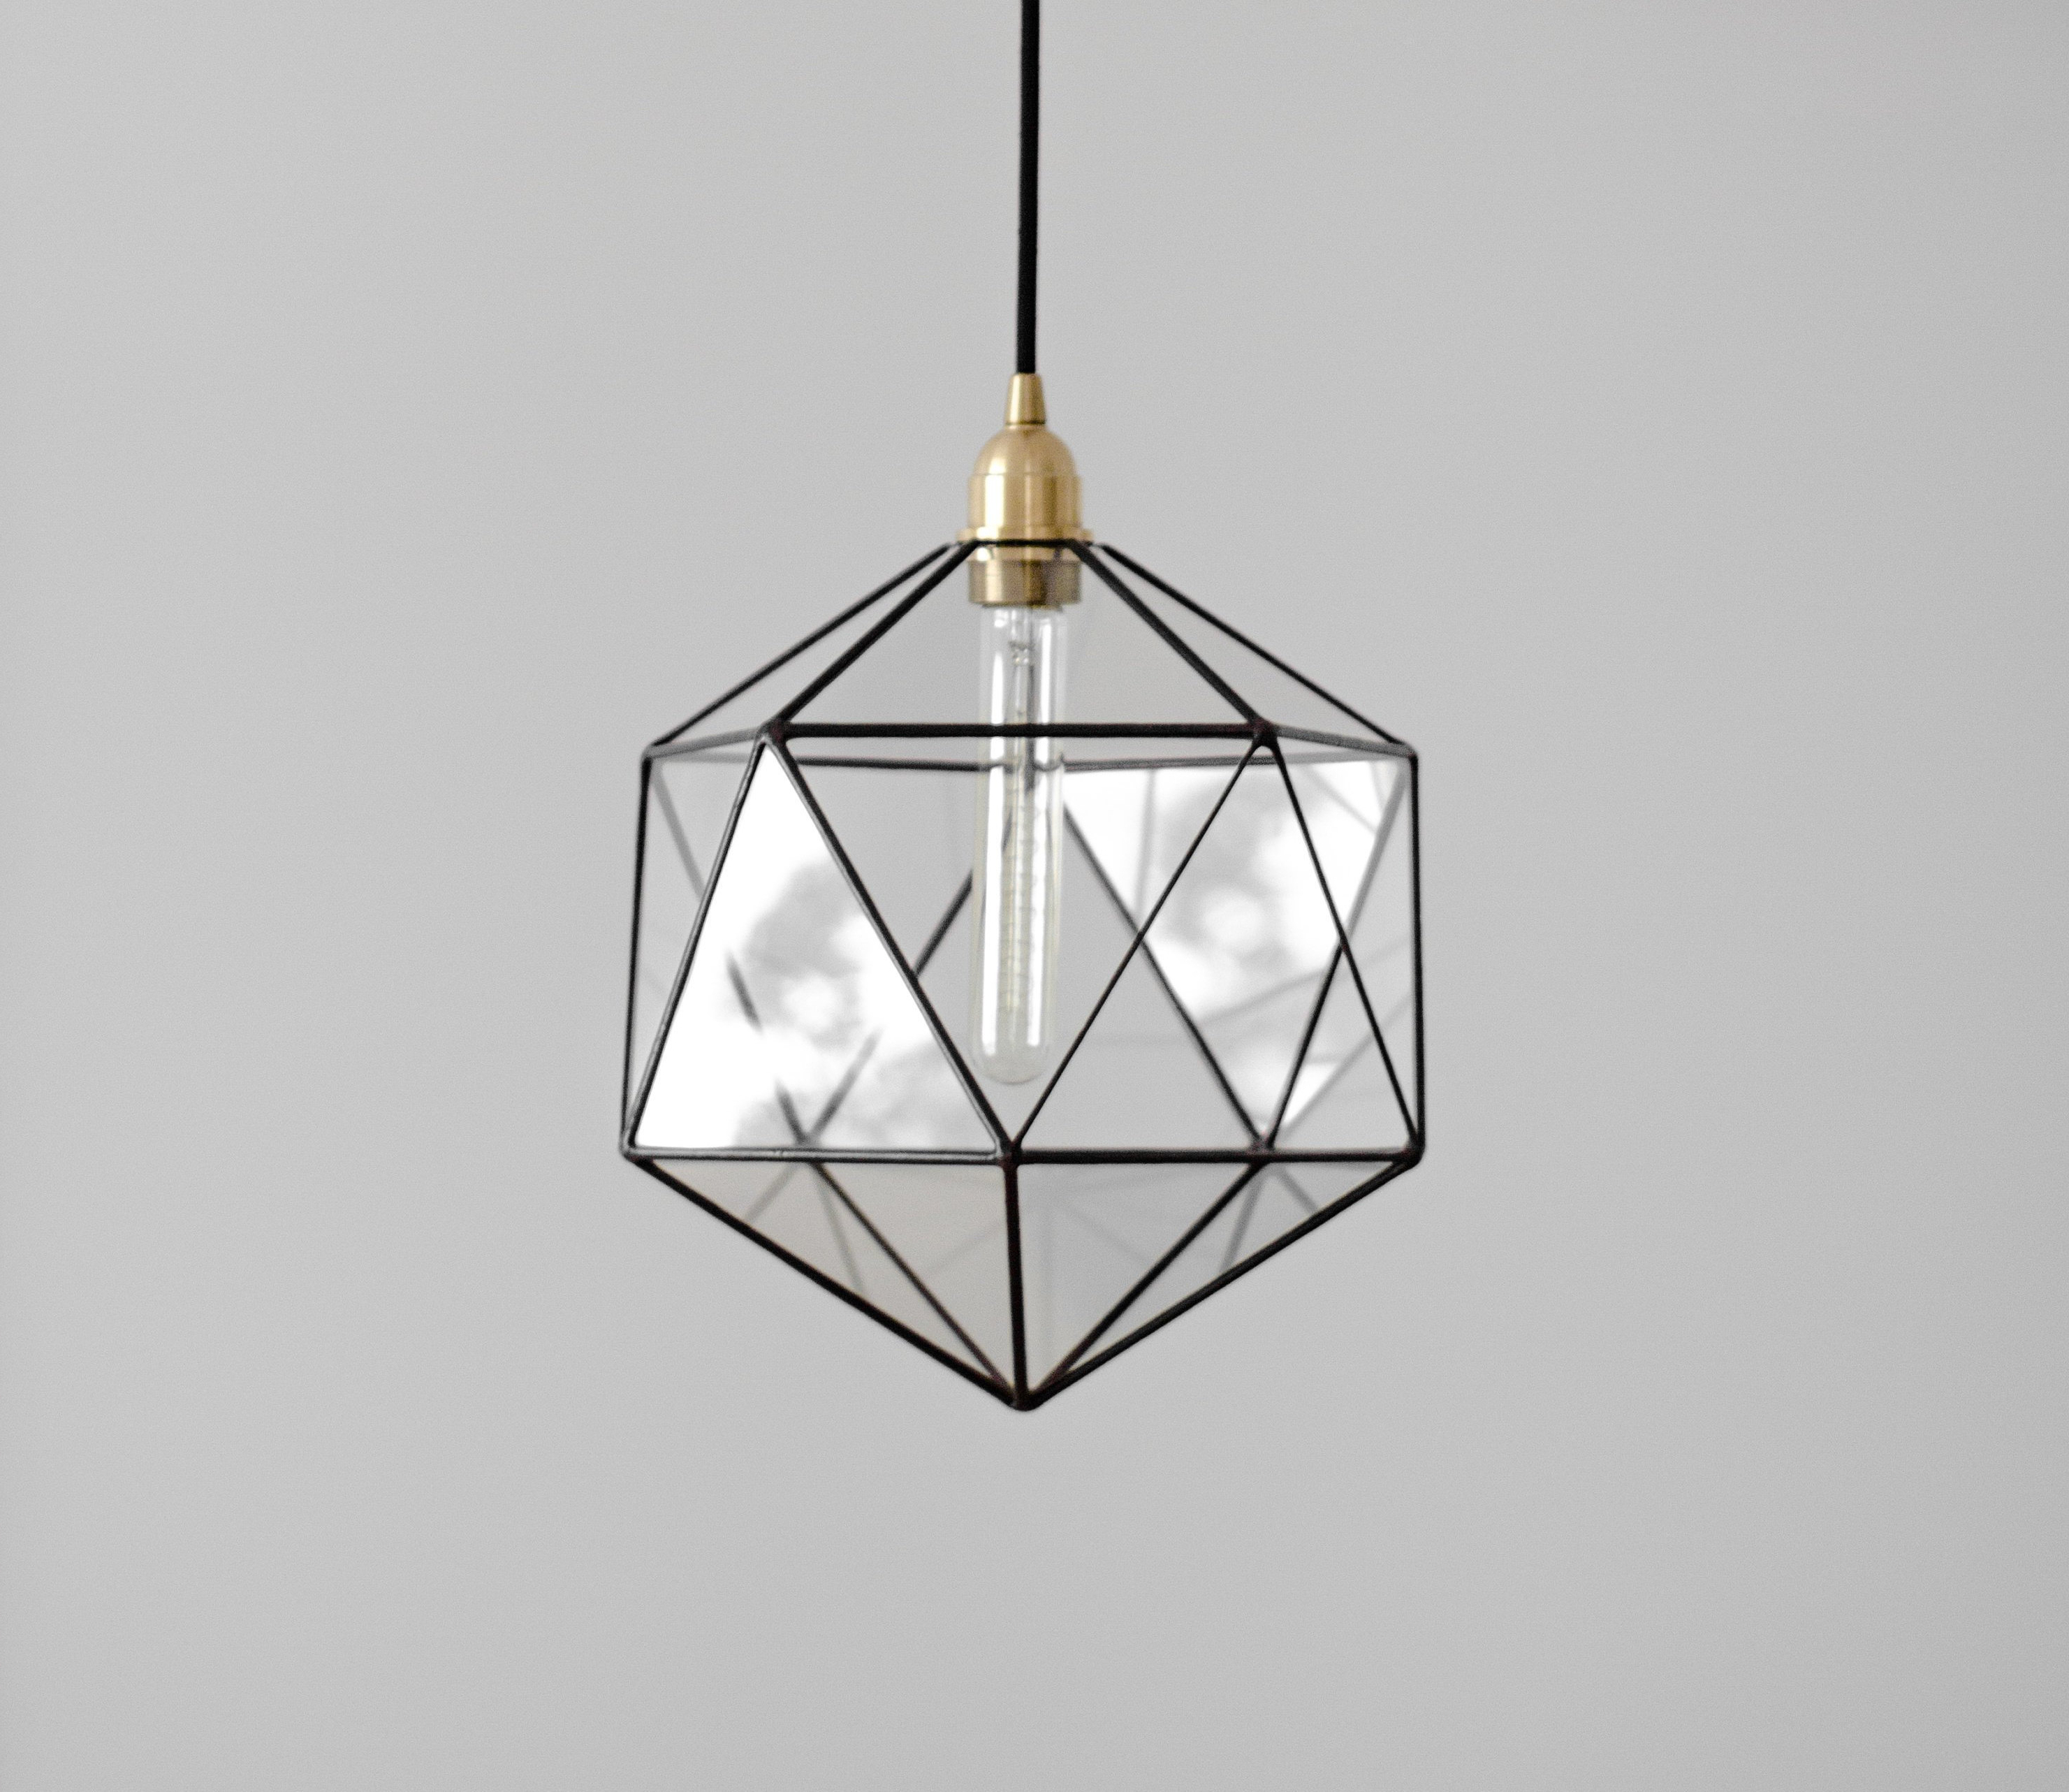 Recent Rossi Industrial Vintage 1 Light Geometric Pendants Throughout Icosahedron Glass Chandelier / Geometric Pendant Light / Modern Warm Retro  Bulb Lamp / 70's Industrial Retro Furniture / Hanging Lighting (View 14 of 25)